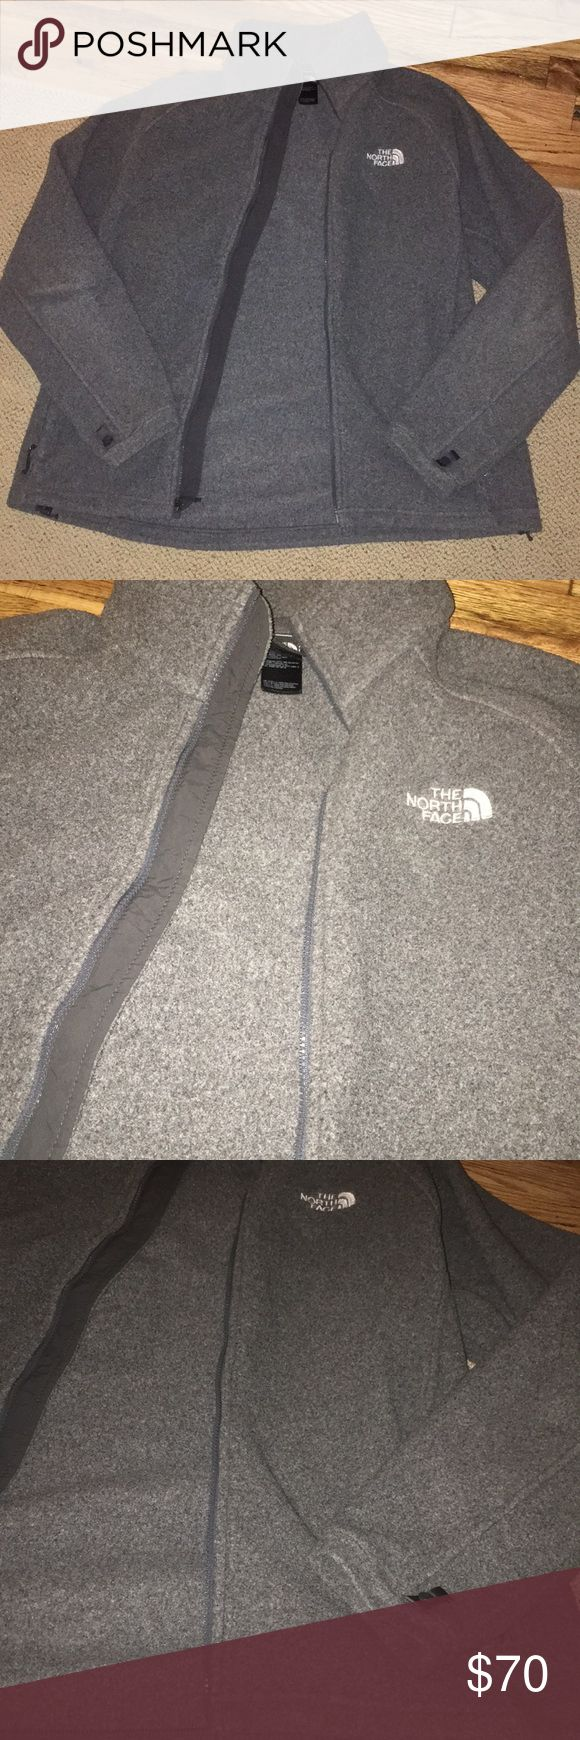 North Face Gray Fleece Zip Jacket Dark gray heather fleece. Size large. Can be men or women's, but has men's fit, meaning doesn't fit tight to body. Very very warm and light. Worn once for a short amount of time. No flaws and in perfect condition! The North Face Jackets & Coats